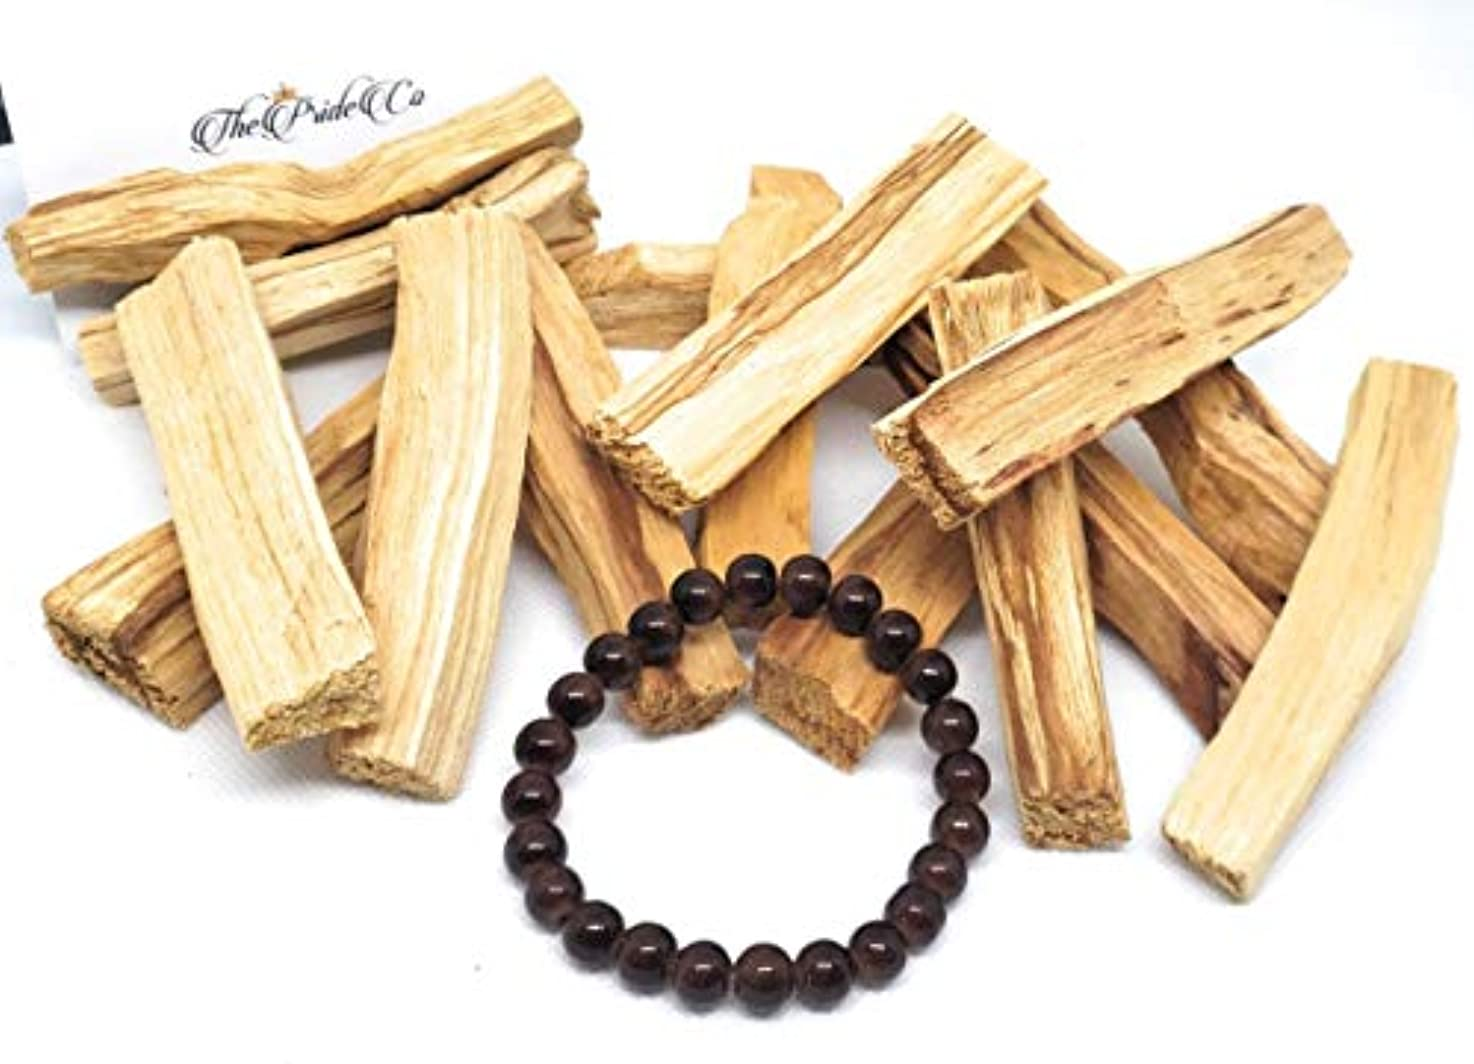 確認する外交官ひそかにThe Pride Palo Santo Smudging Sticks